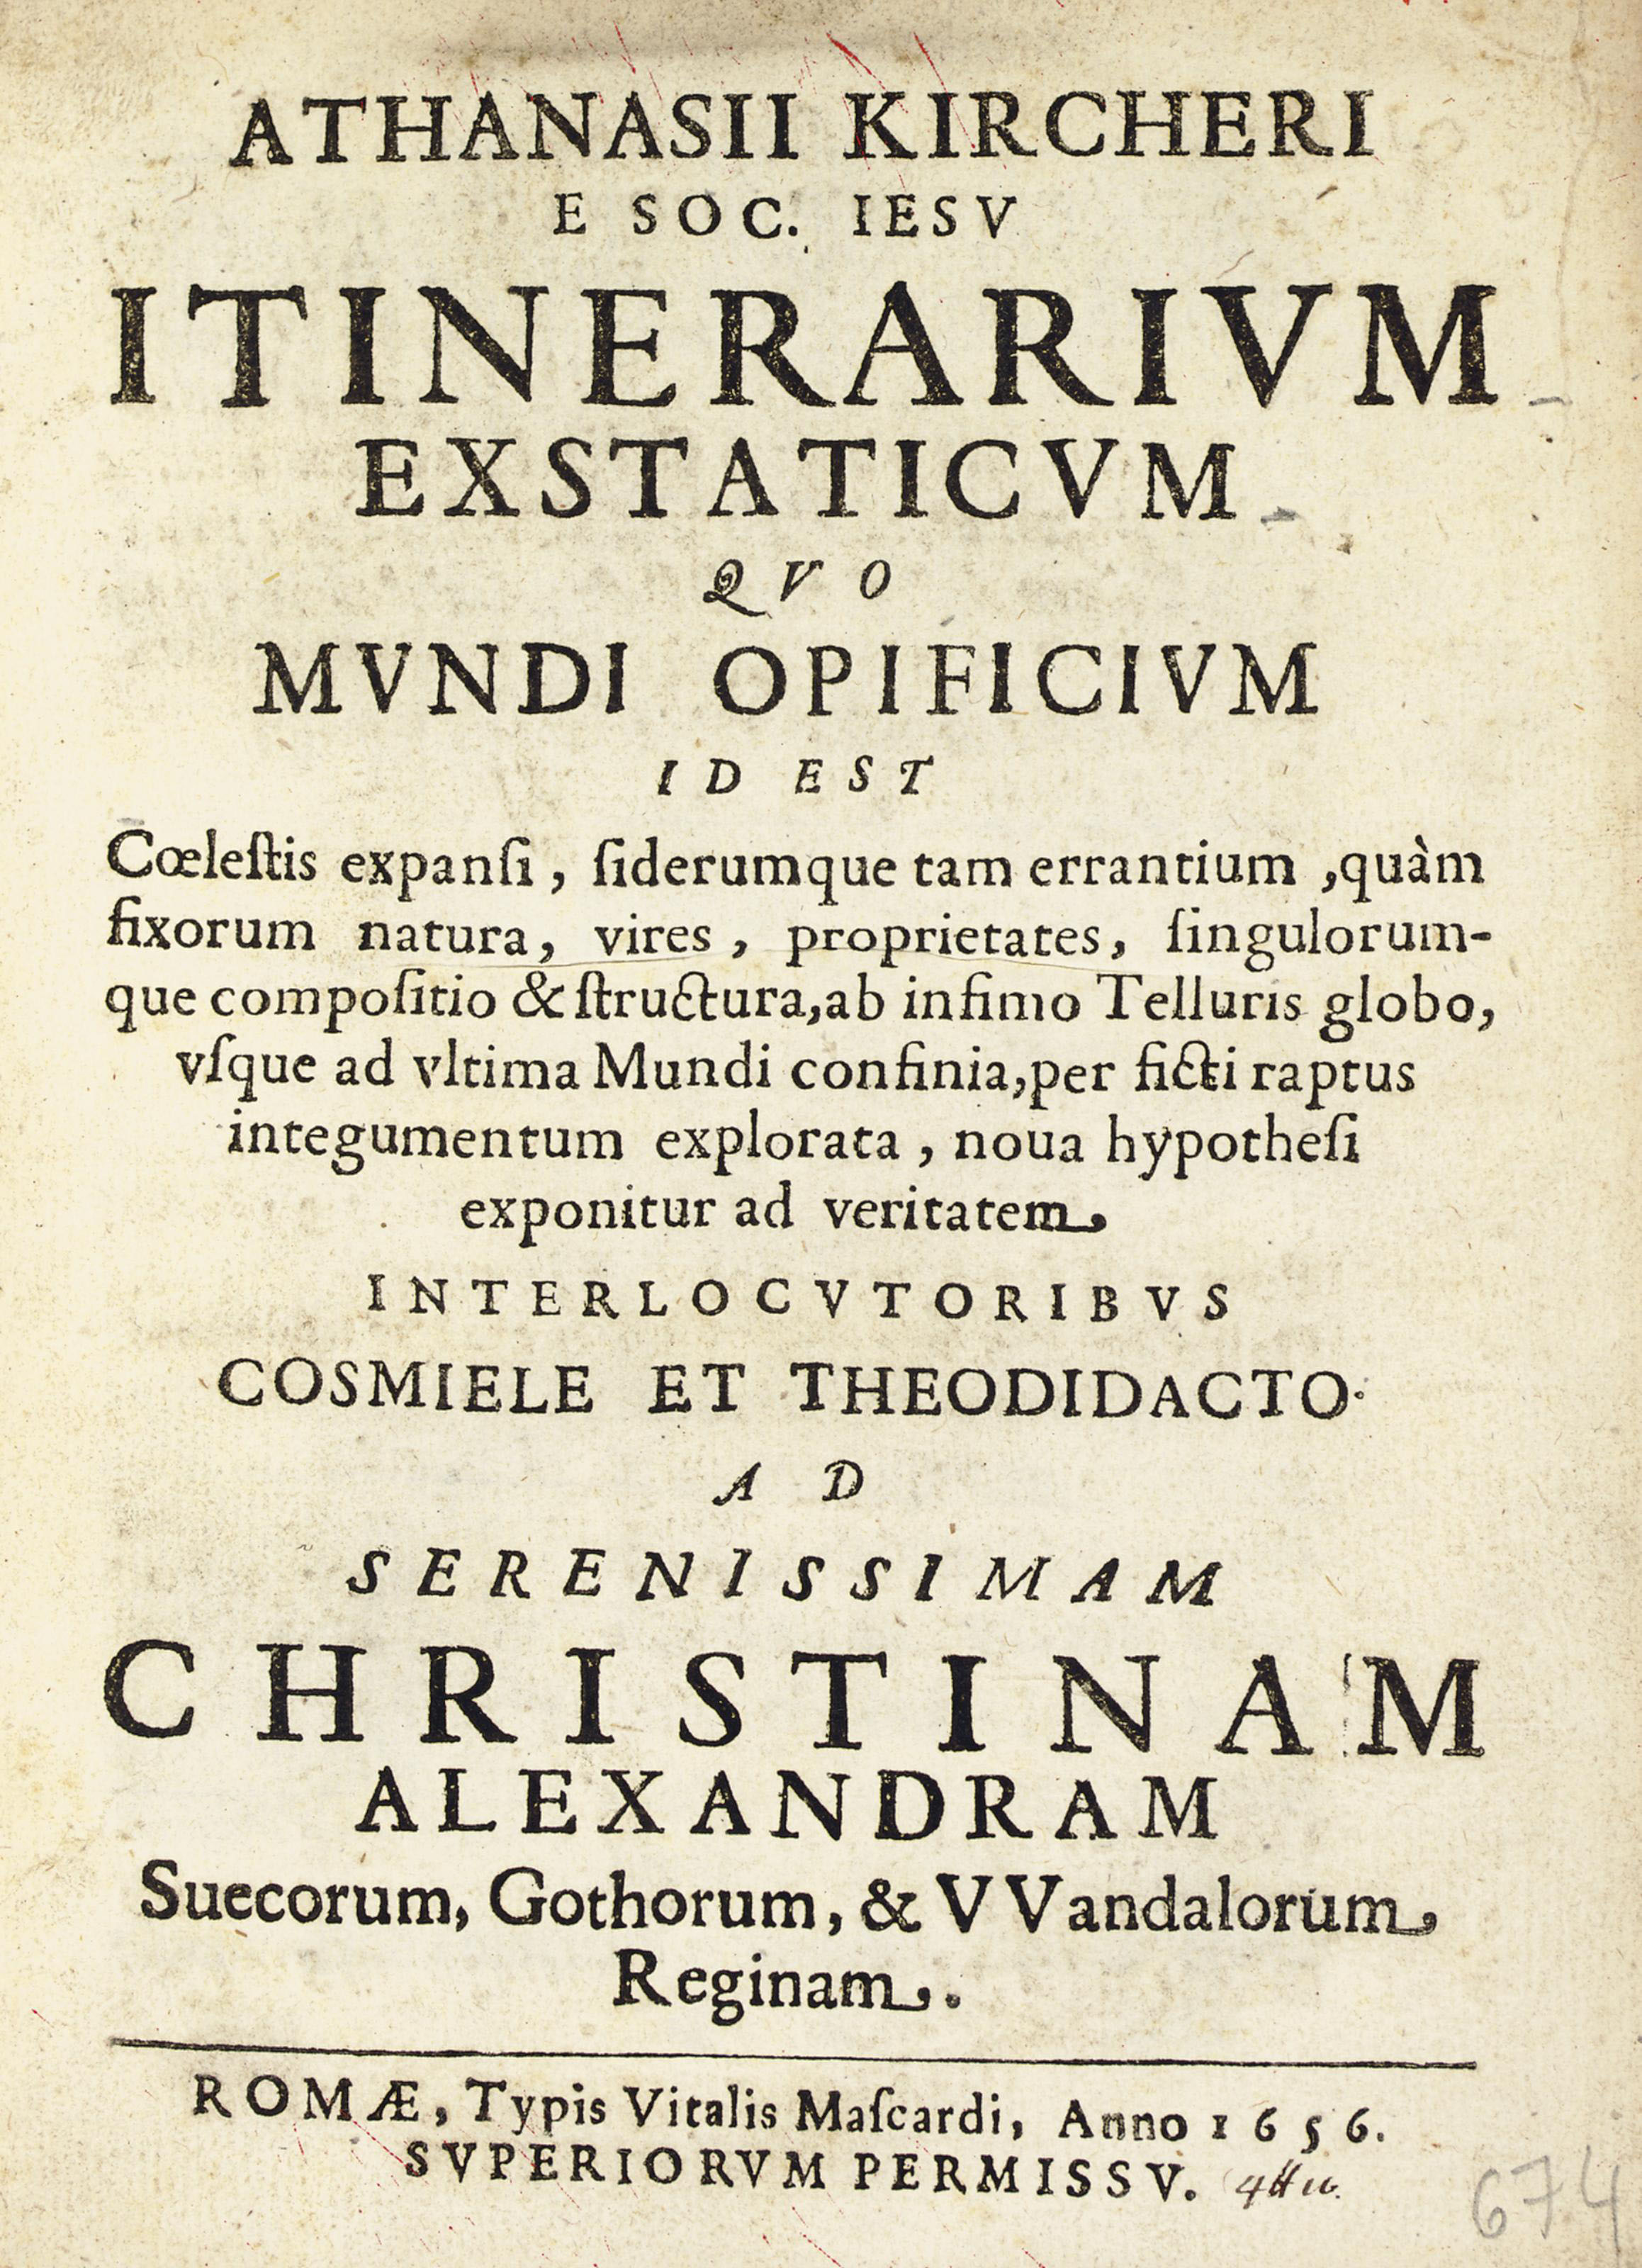 KIRCHER, Athanasius (1602-1680). Itinerarium exstaticum quo mundi opificium. Rome: Vitalis Mascardi, 1656. 4° (220 x 165 mm). Woodcut head- and- tail pieces and initials. (Light soiling to title.) 18th-century speckled calf, red speckled edges (rebacked to match, extremities lightly rubbed).